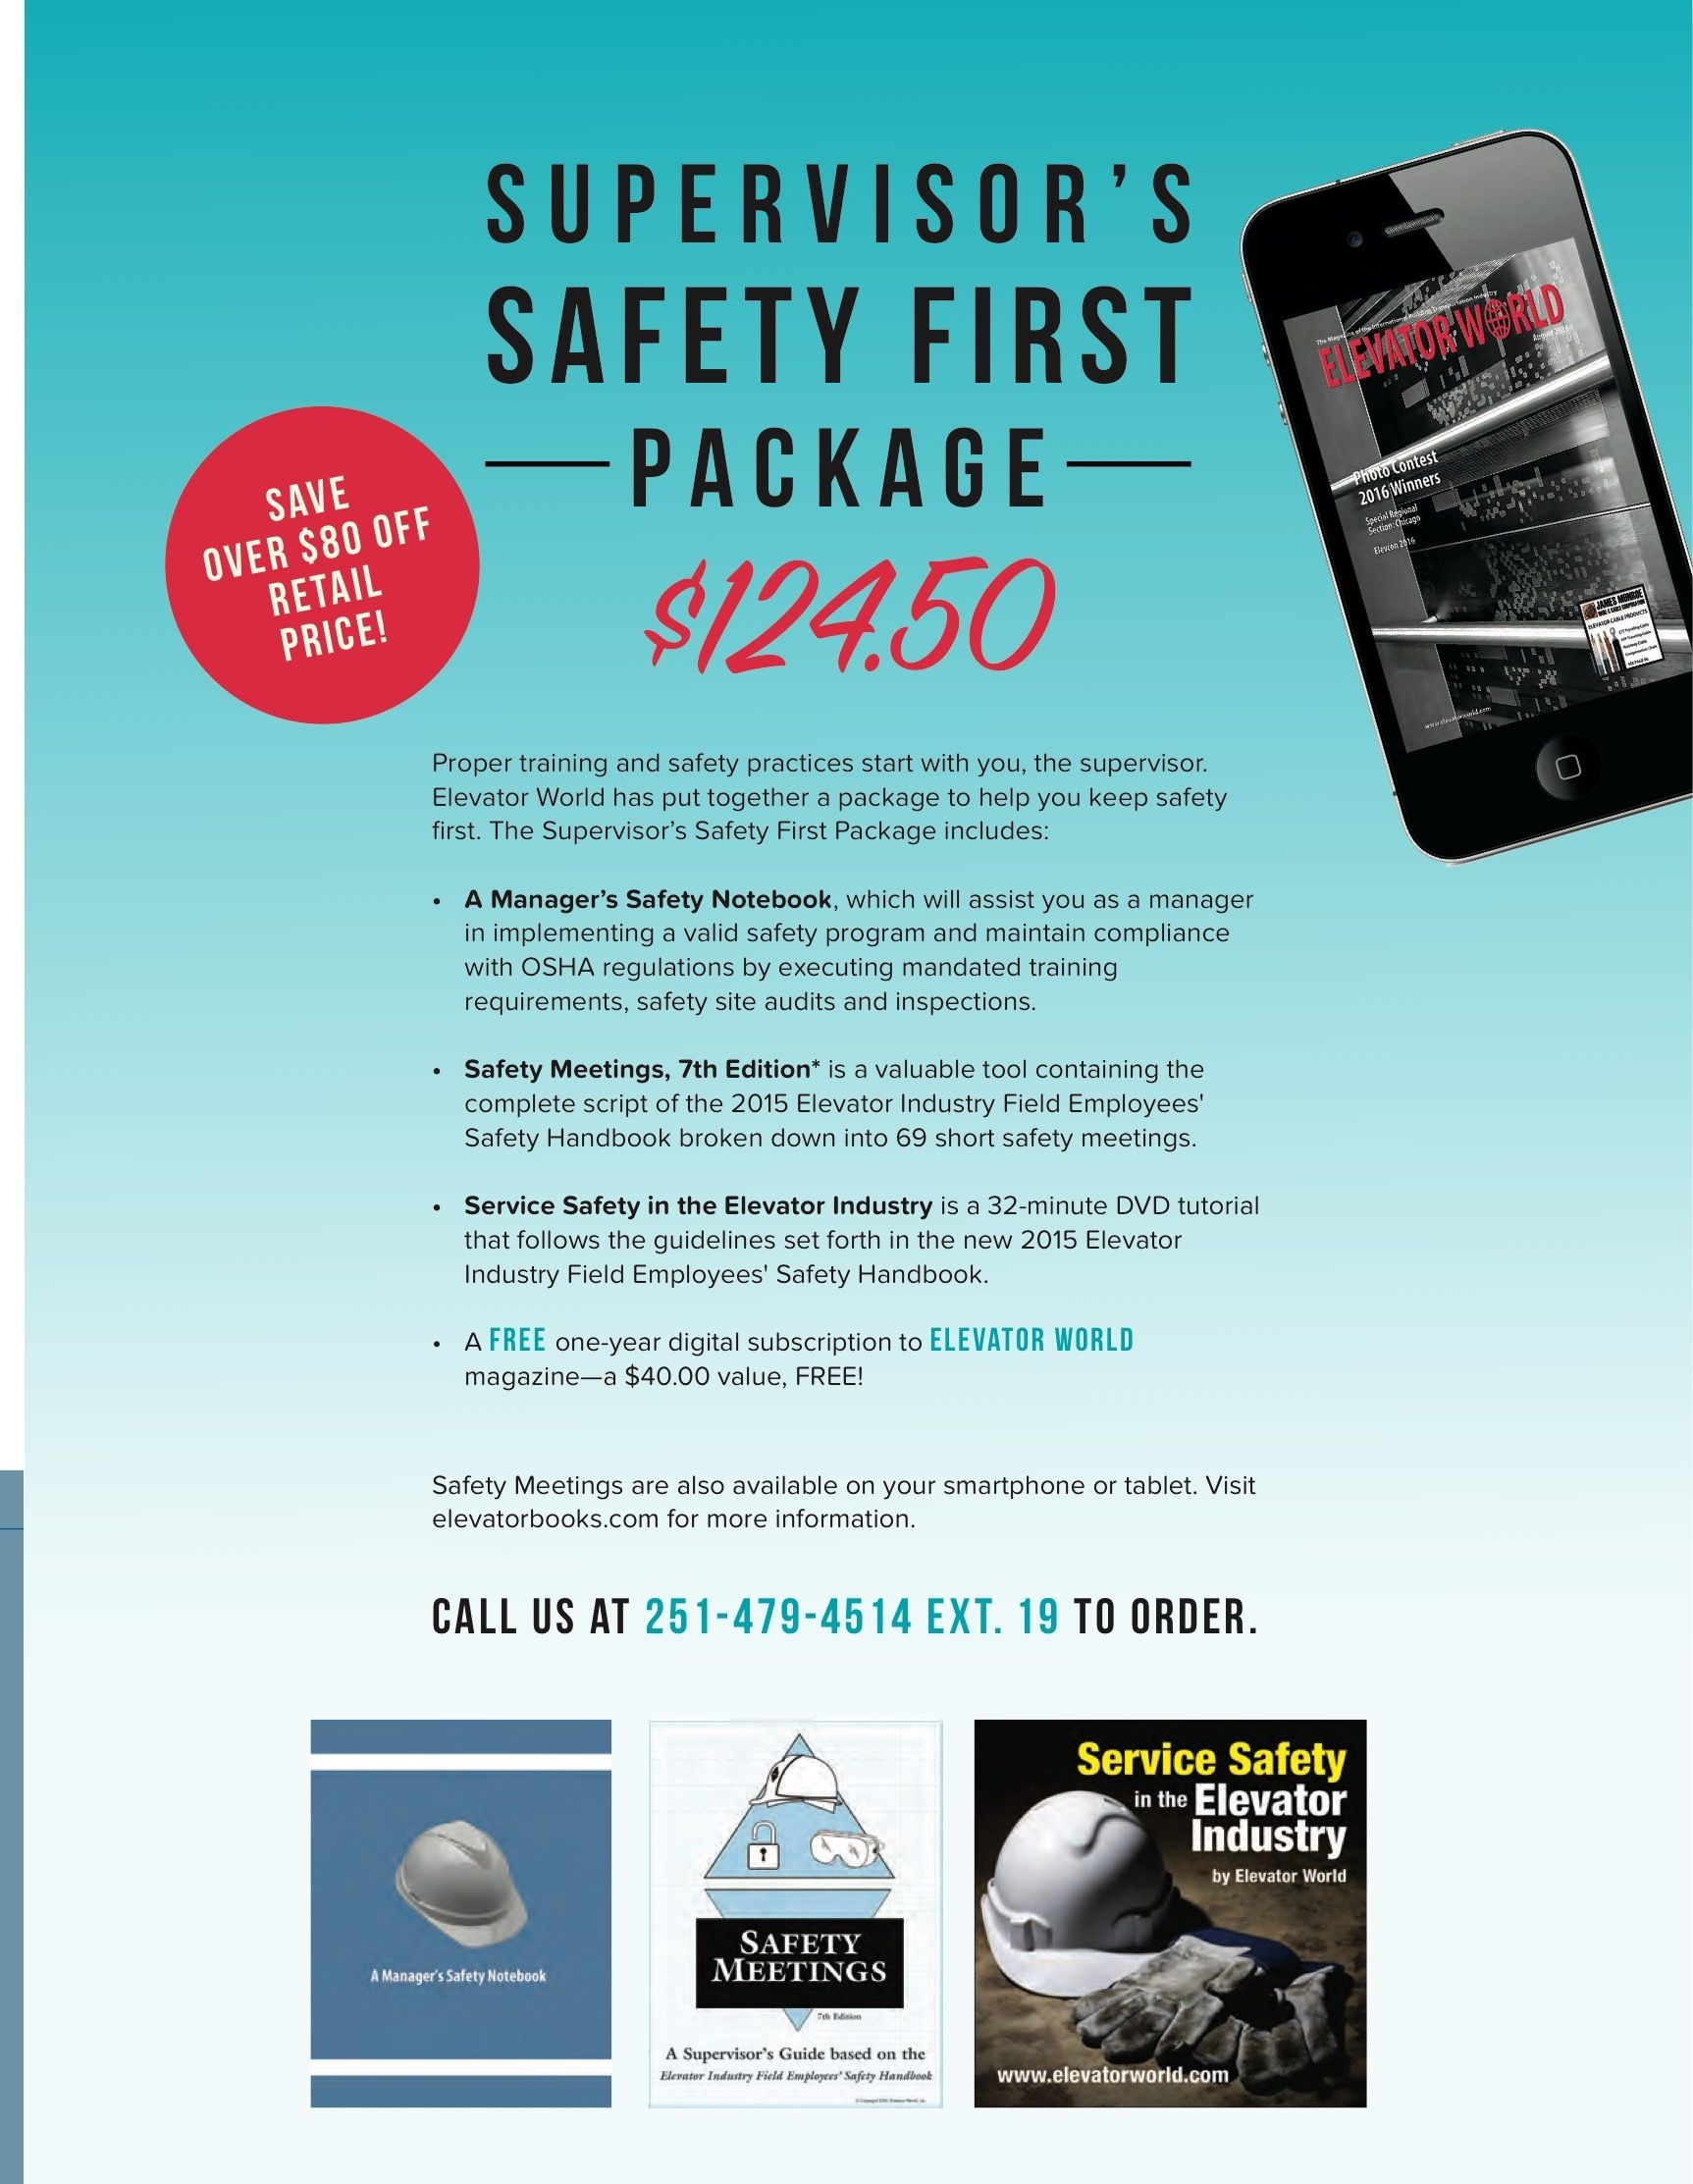 Proper training and safety practices start with you, the